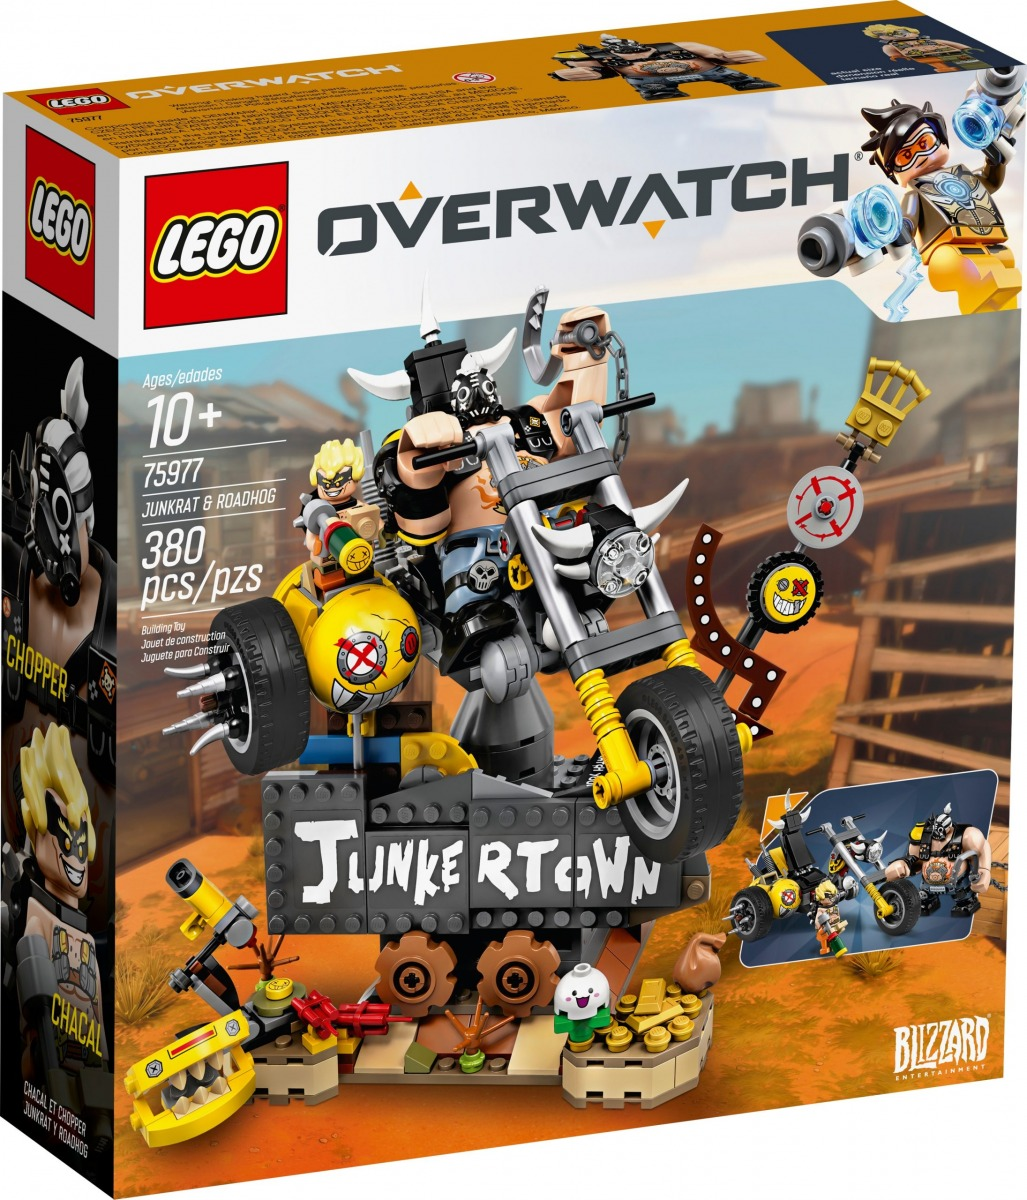 lego 75977 junkrat e roadhog scaled